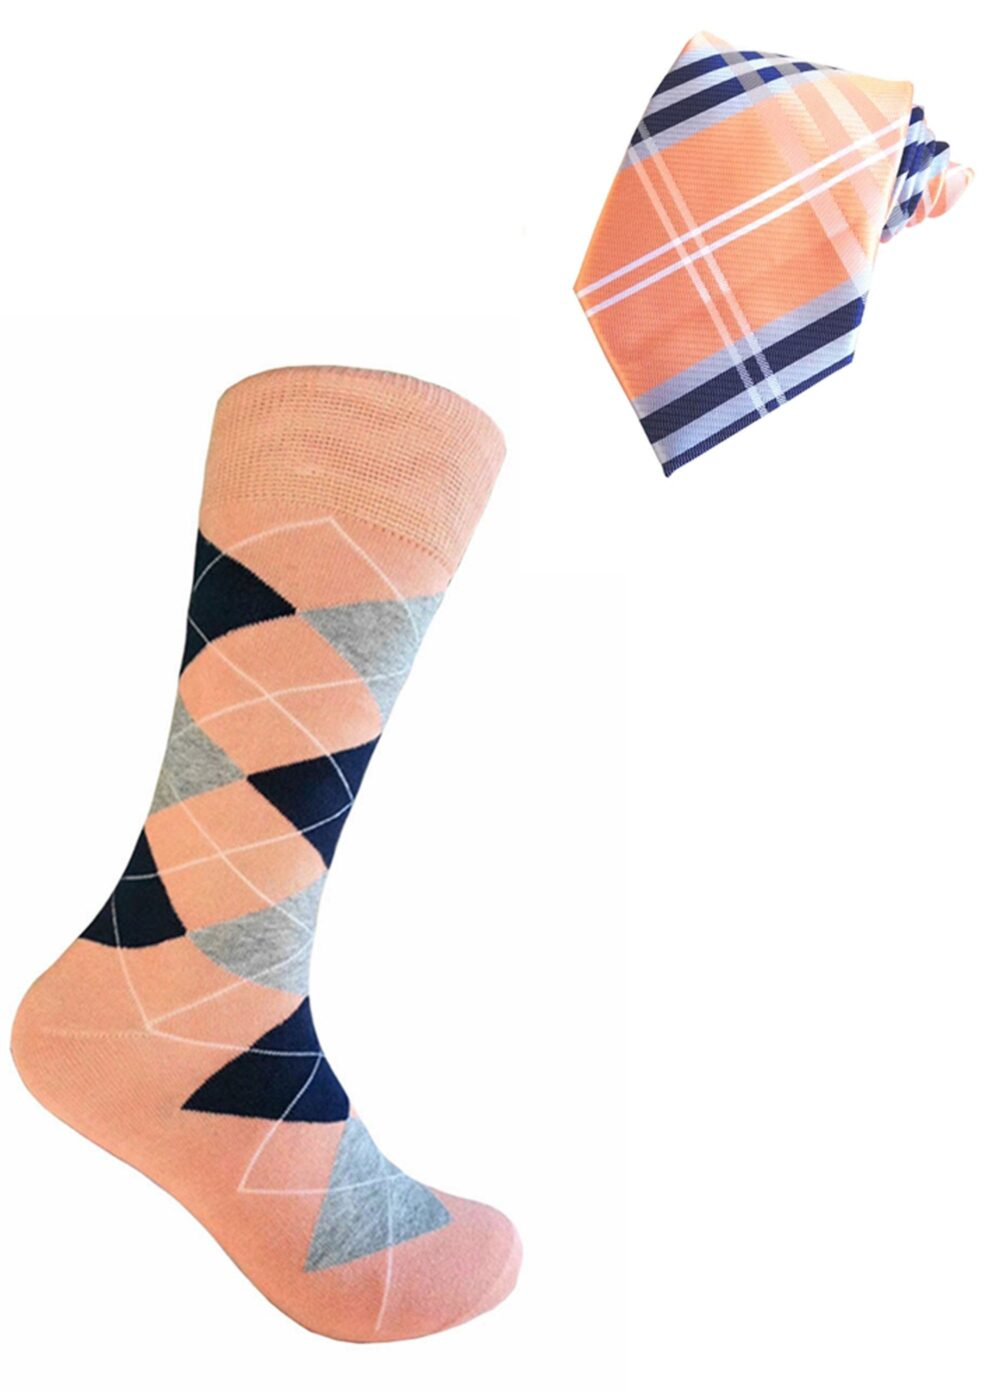 Peach With Navy Blue & Heather Gray Color Plaid Necktie Argyle Socks Set For Men in Multi-Occasion